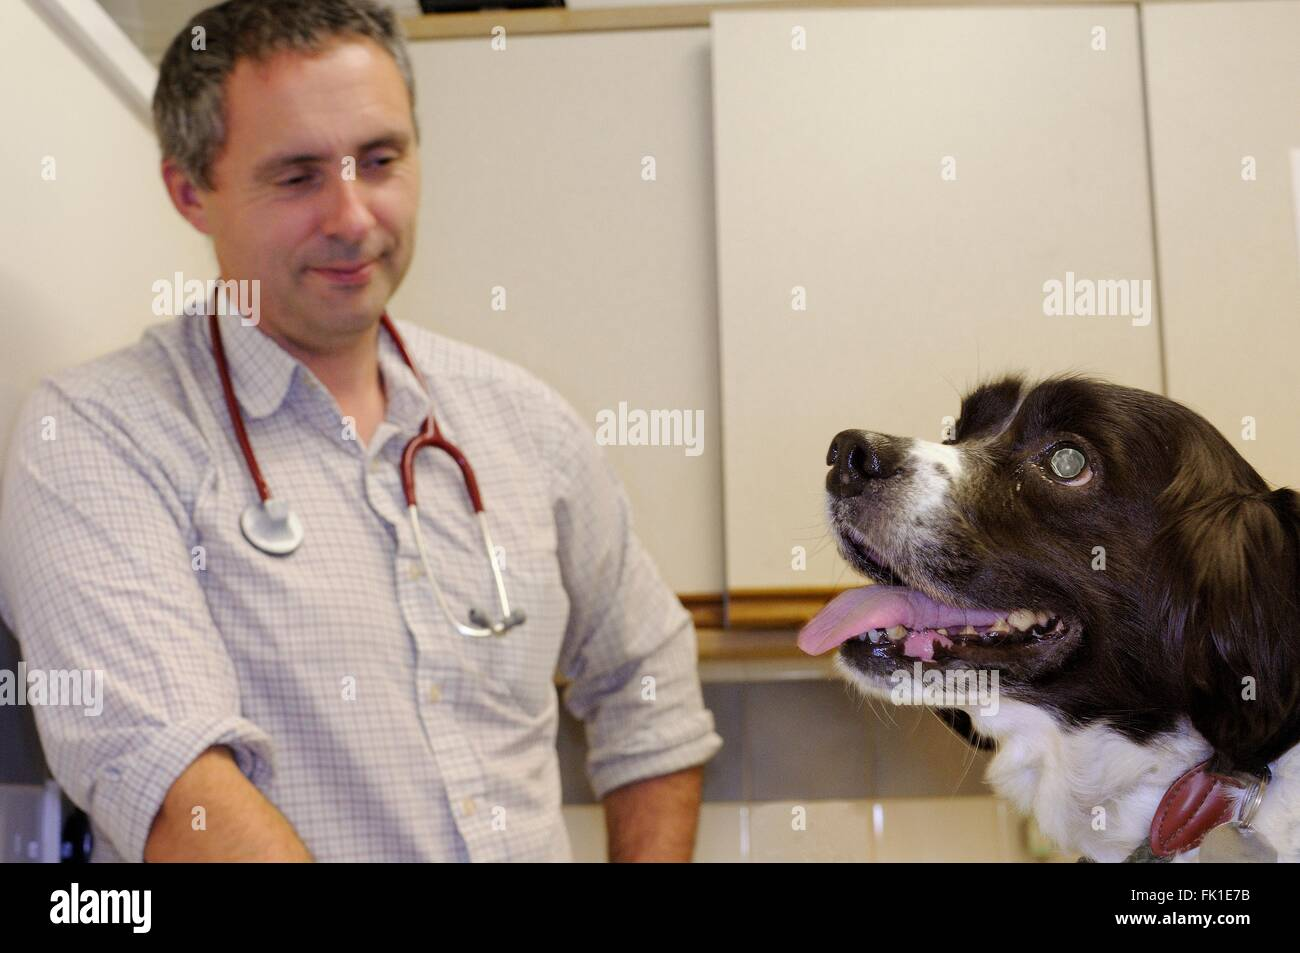 Veterinarian inspecting a Springer spaniel in his clinic, Wiltshire, UK - Stock Image